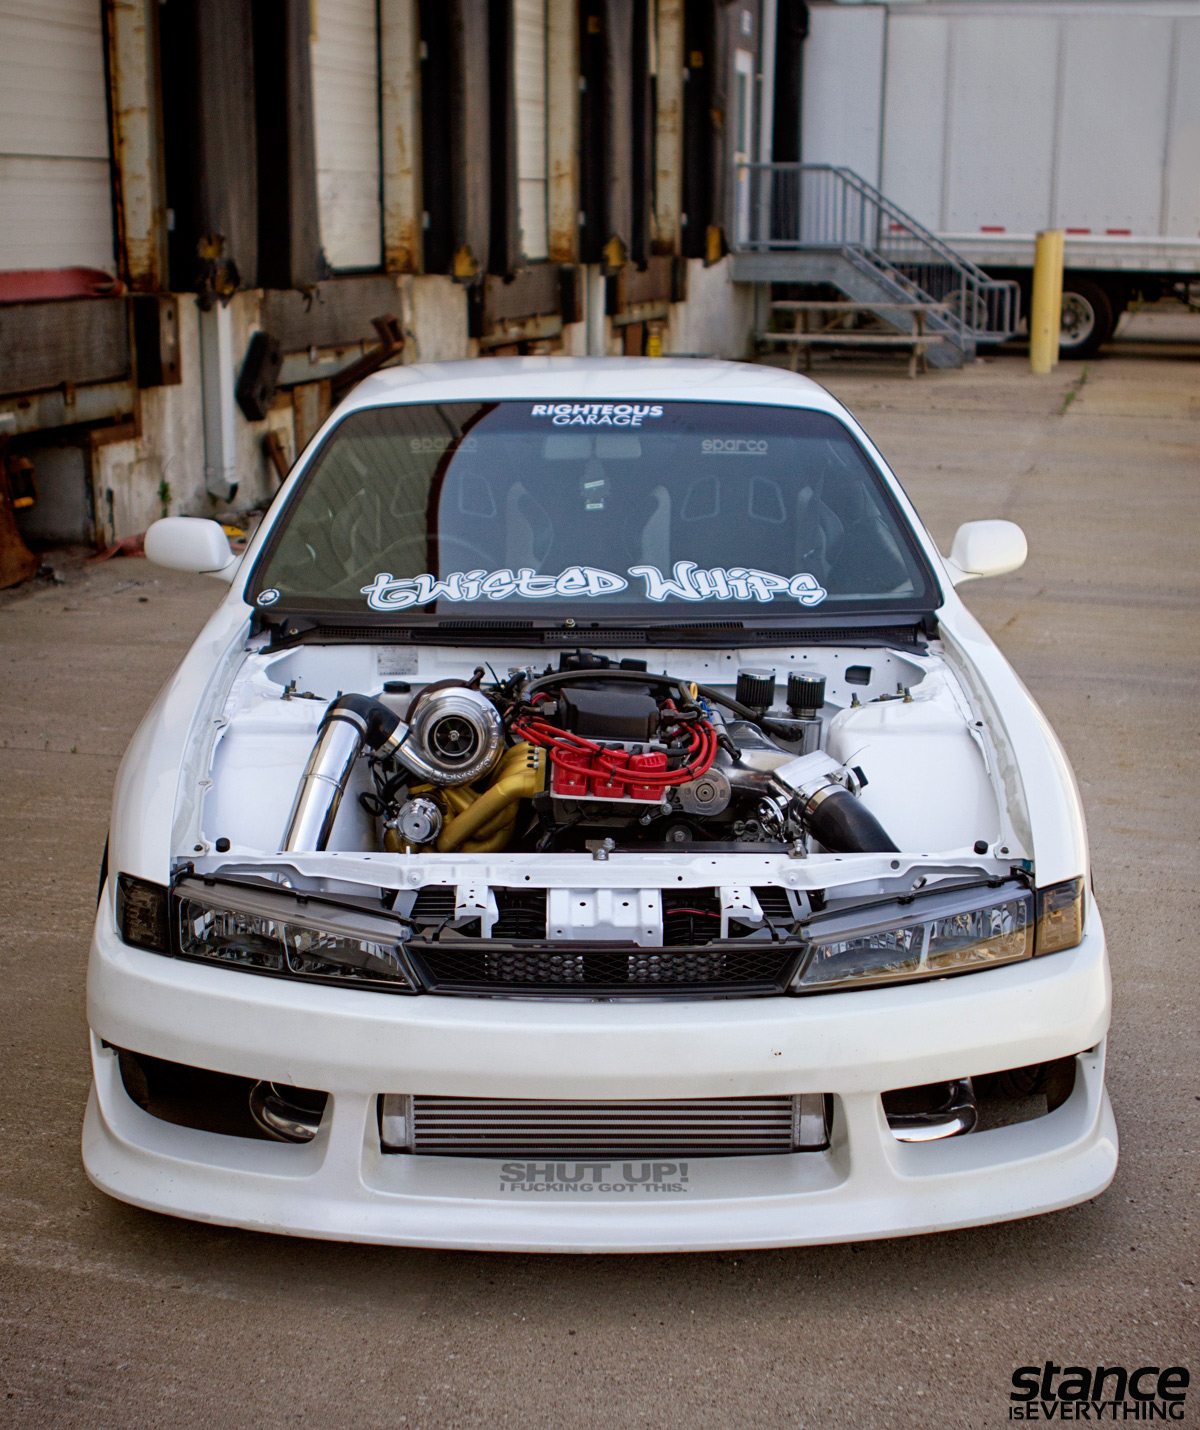 vr6t-nissan-s14-engine-bay-outdoors-1